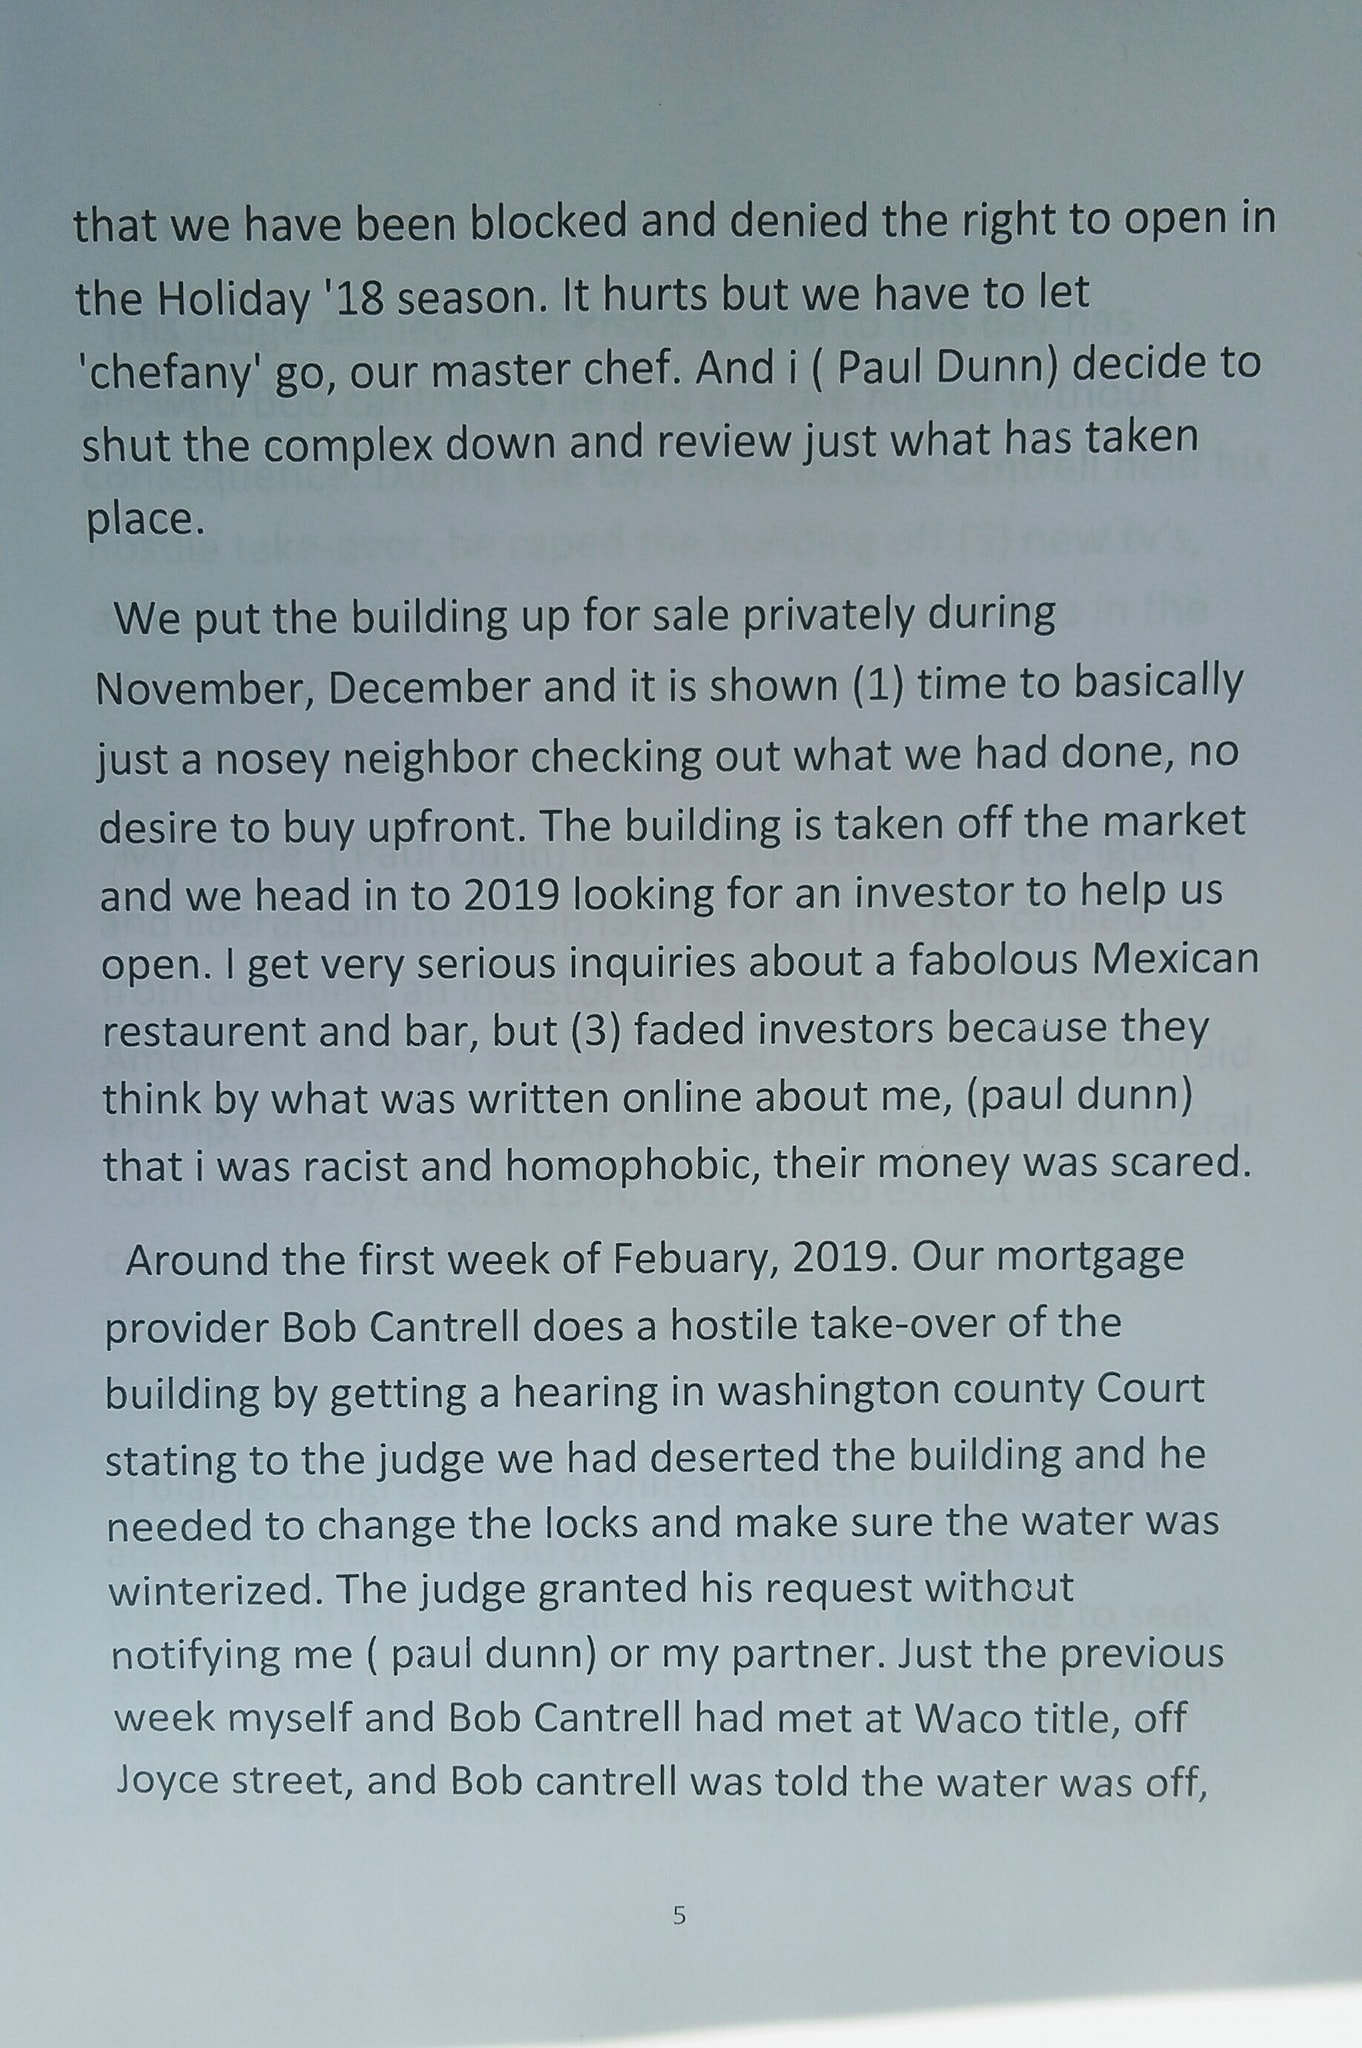 Paul Dunn's written statement